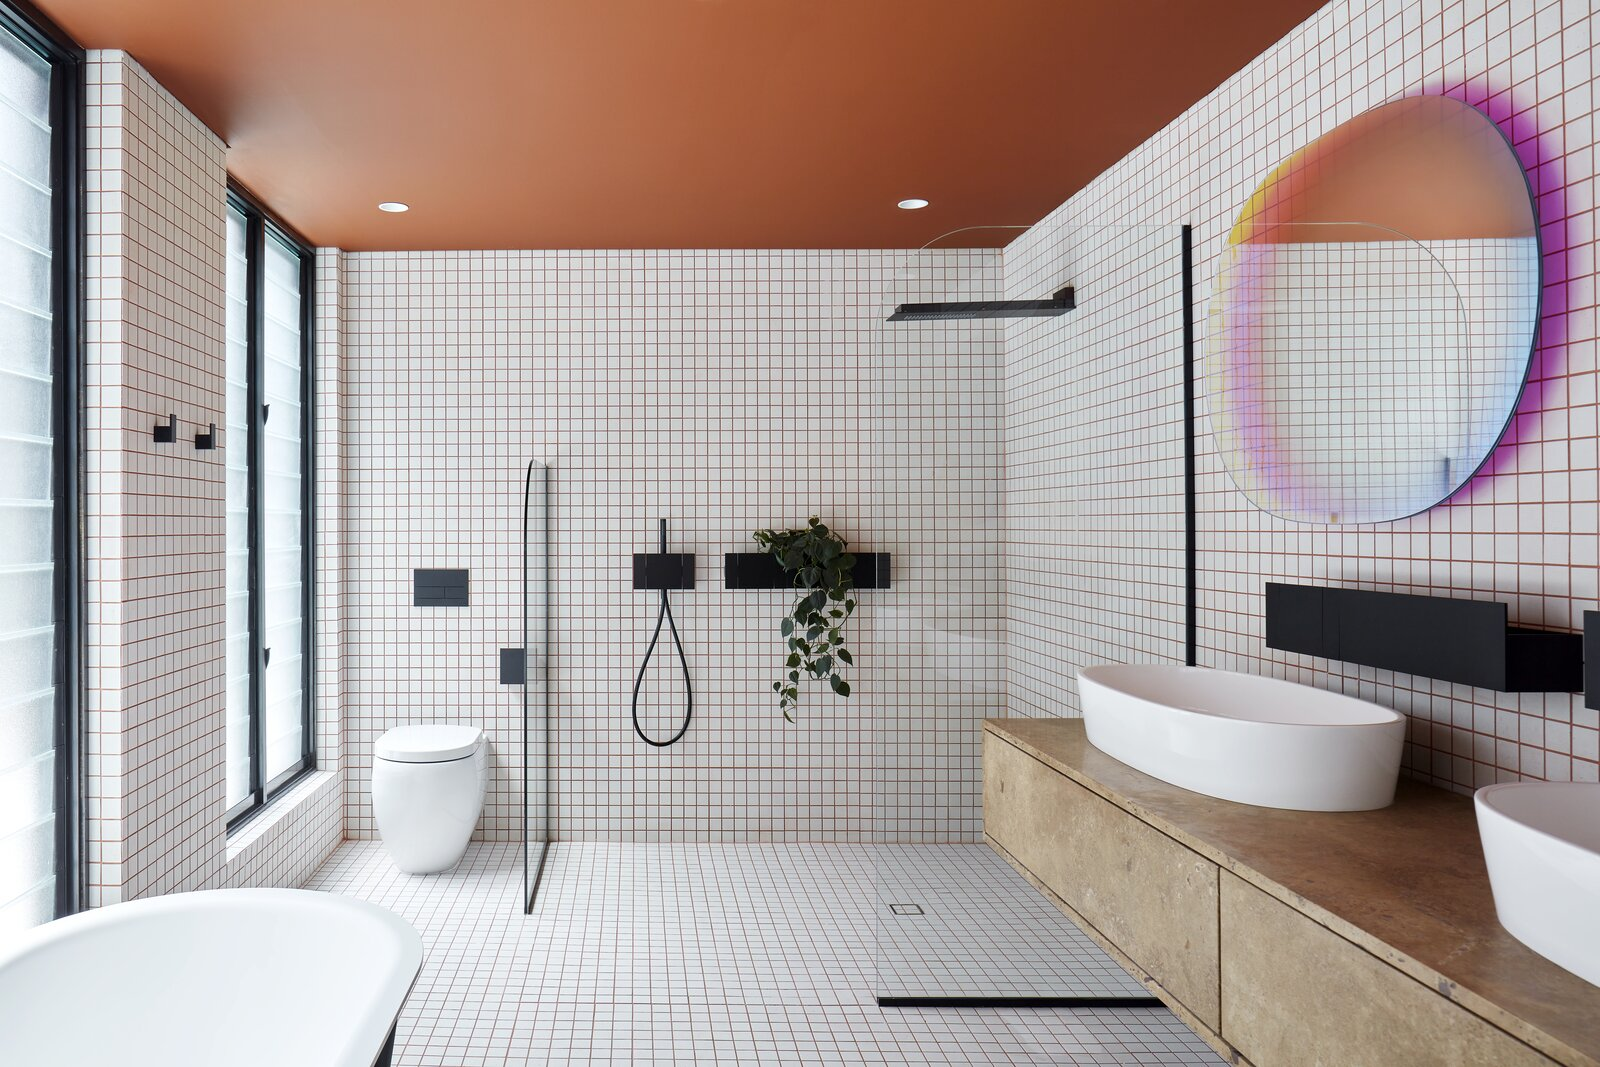 Bath Room, Stone Counter, One Piece Toilet, Ceramic Tile Floor, Open Shower, Vessel Sink, Recessed Lighting, Subway Tile Wall, Freestanding Tub, and Ceramic Tile Wall  Photo 19 of 23 in Mechanized Shutters Protect This Australian Home From Prying Eyes from Shutter House